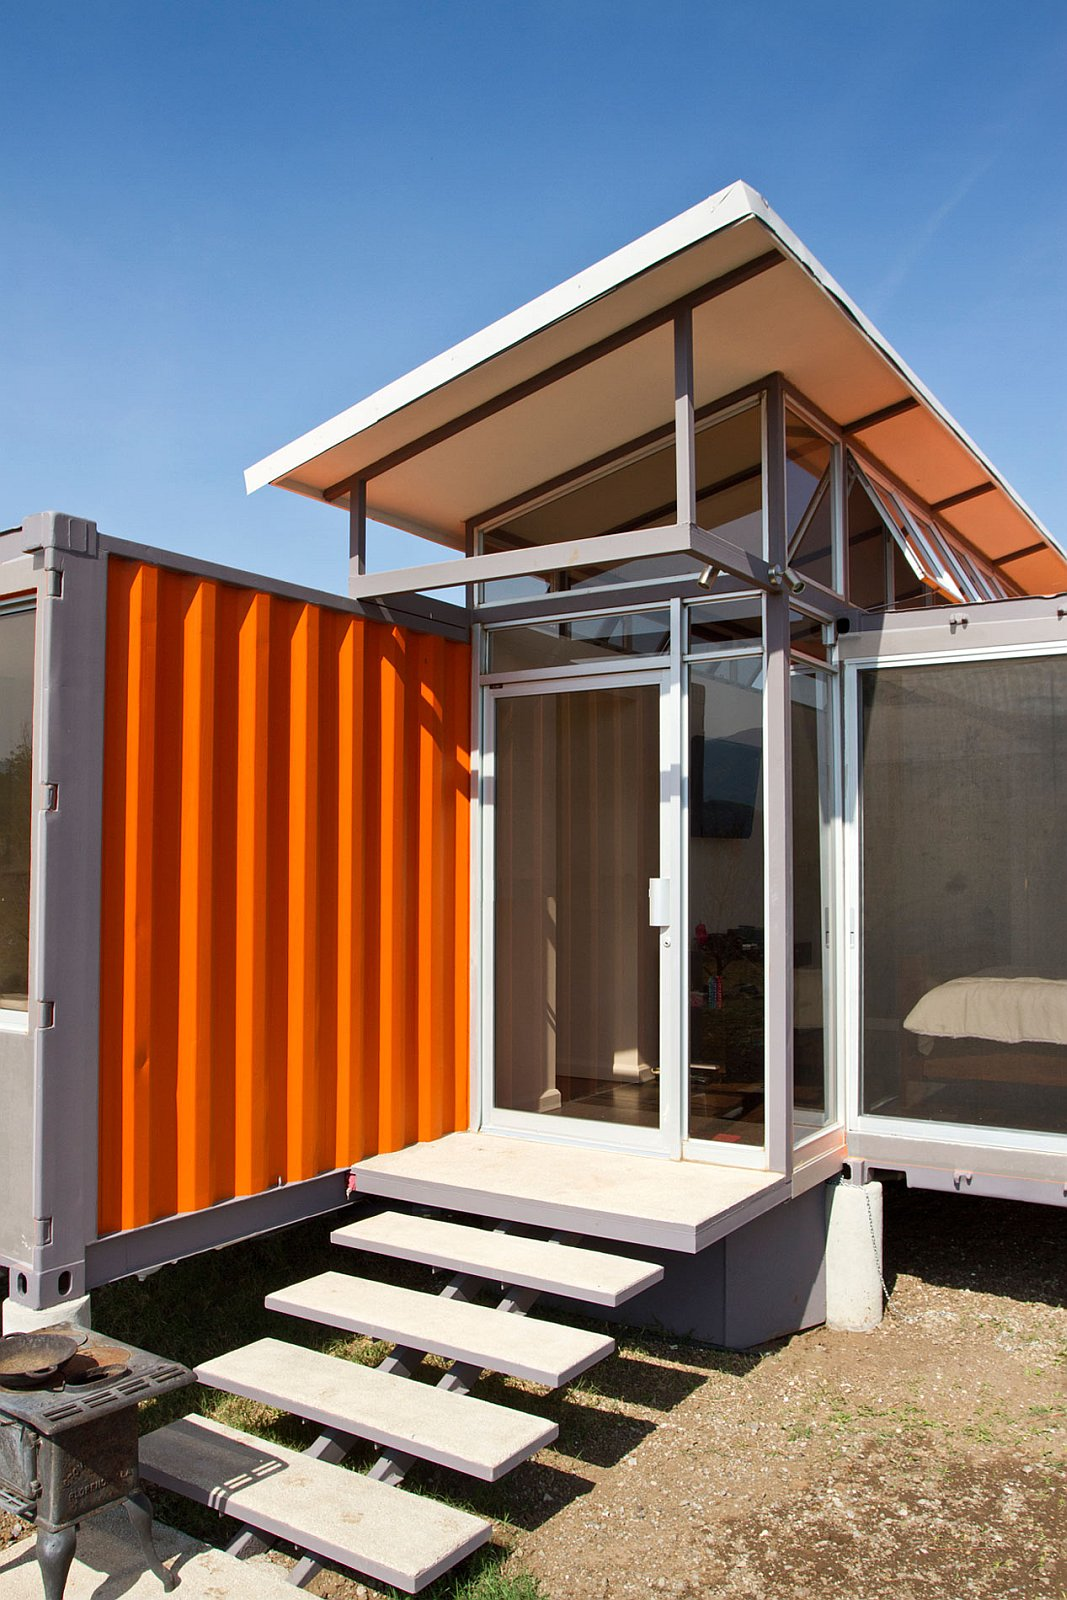 Gallery containers of hope by benjamin garcia saxe small house bliss - Container homes costa rica ...